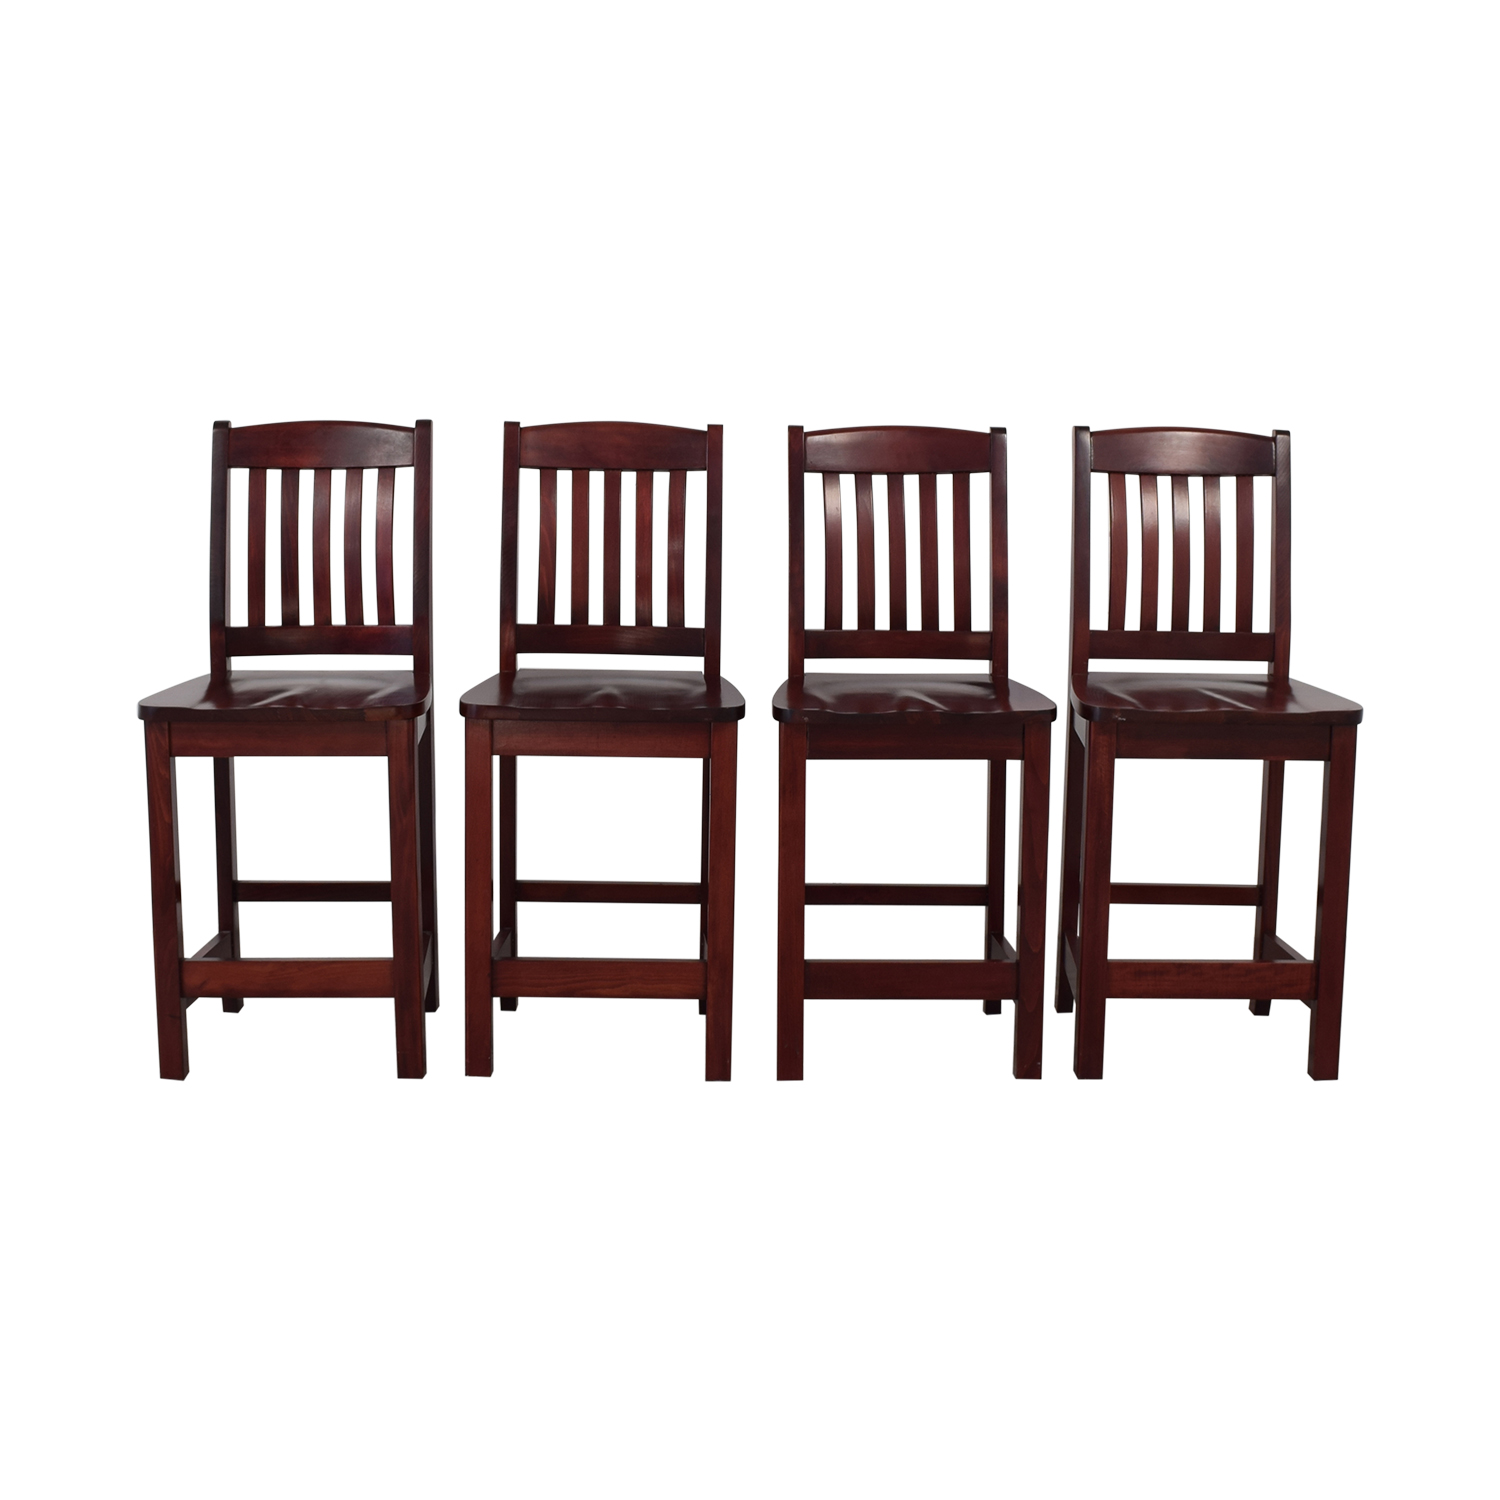 Mahogany-Finish Counter-Height Dining Chairs nyc